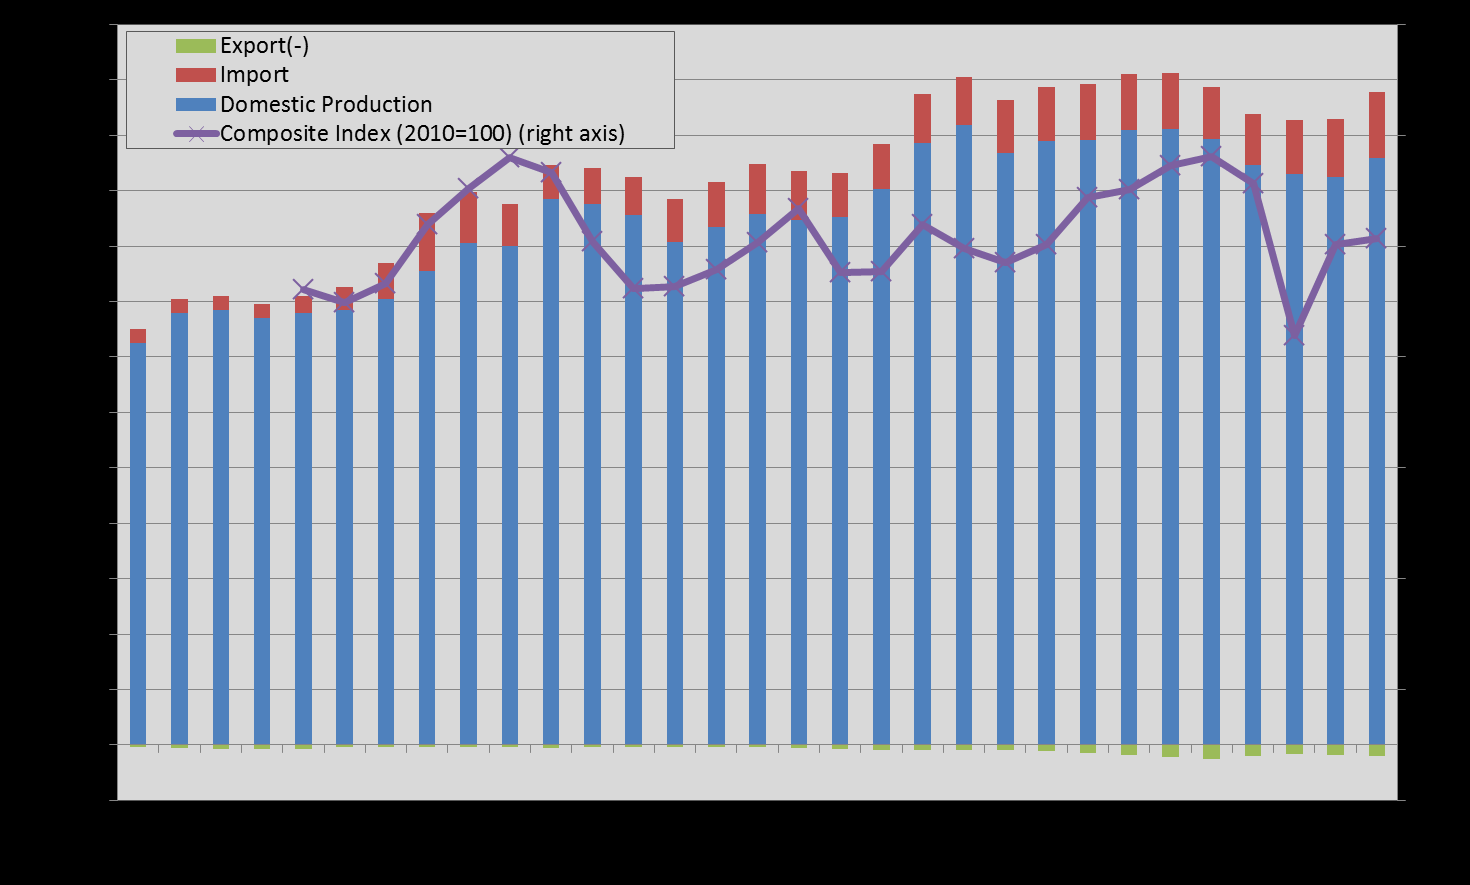 Japan Domestic Chocolate Production & Import/Export Unit: M/T Source: Domestic Production estimated by All Nippon